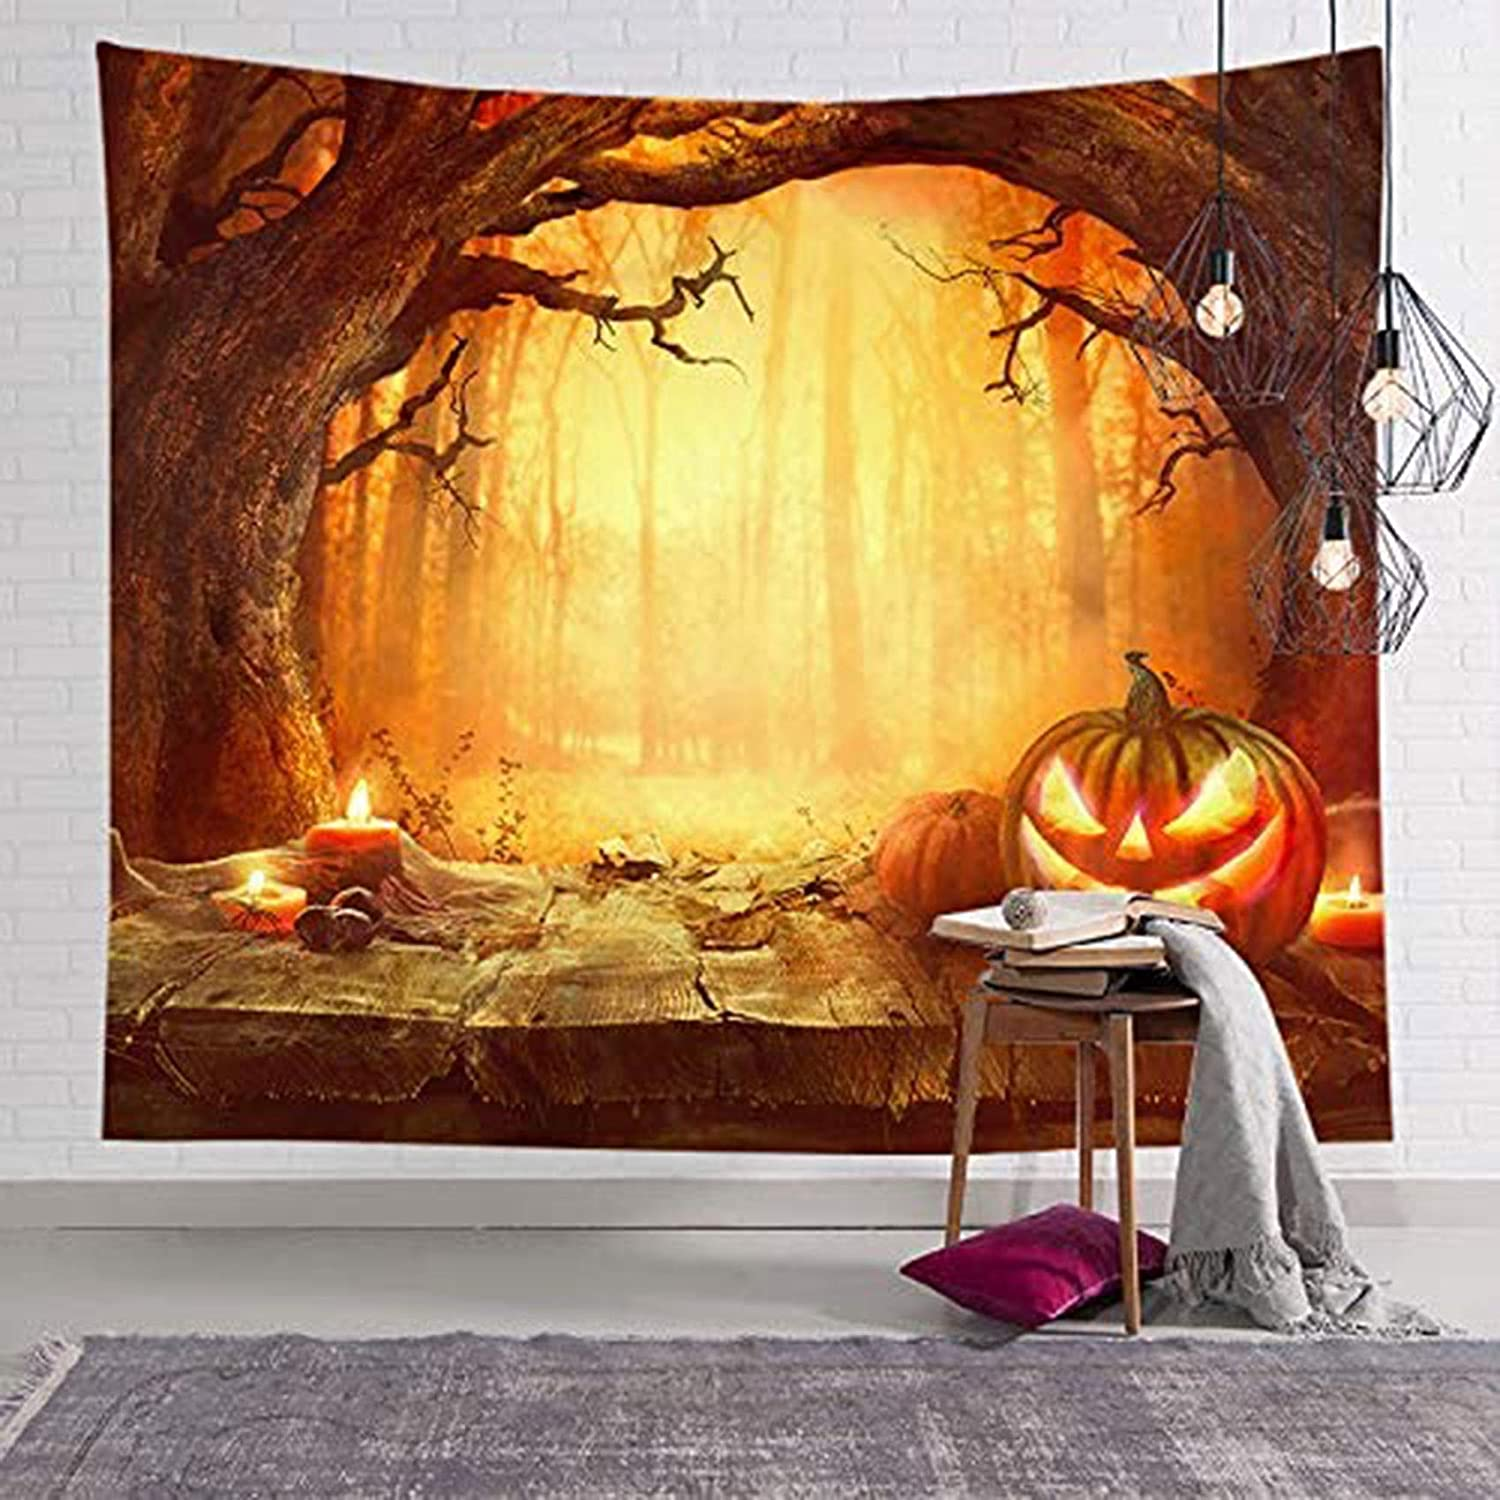 ECOTOB Halloween Tapestry Magical Fog Haunted Woods Tapestry Wall Hanging Blanket Misty Forest Woodland Big Old Trees and Pumpkin Tapestries for Bedroom Living Room Dorm Party Decor,80Wx60H inches